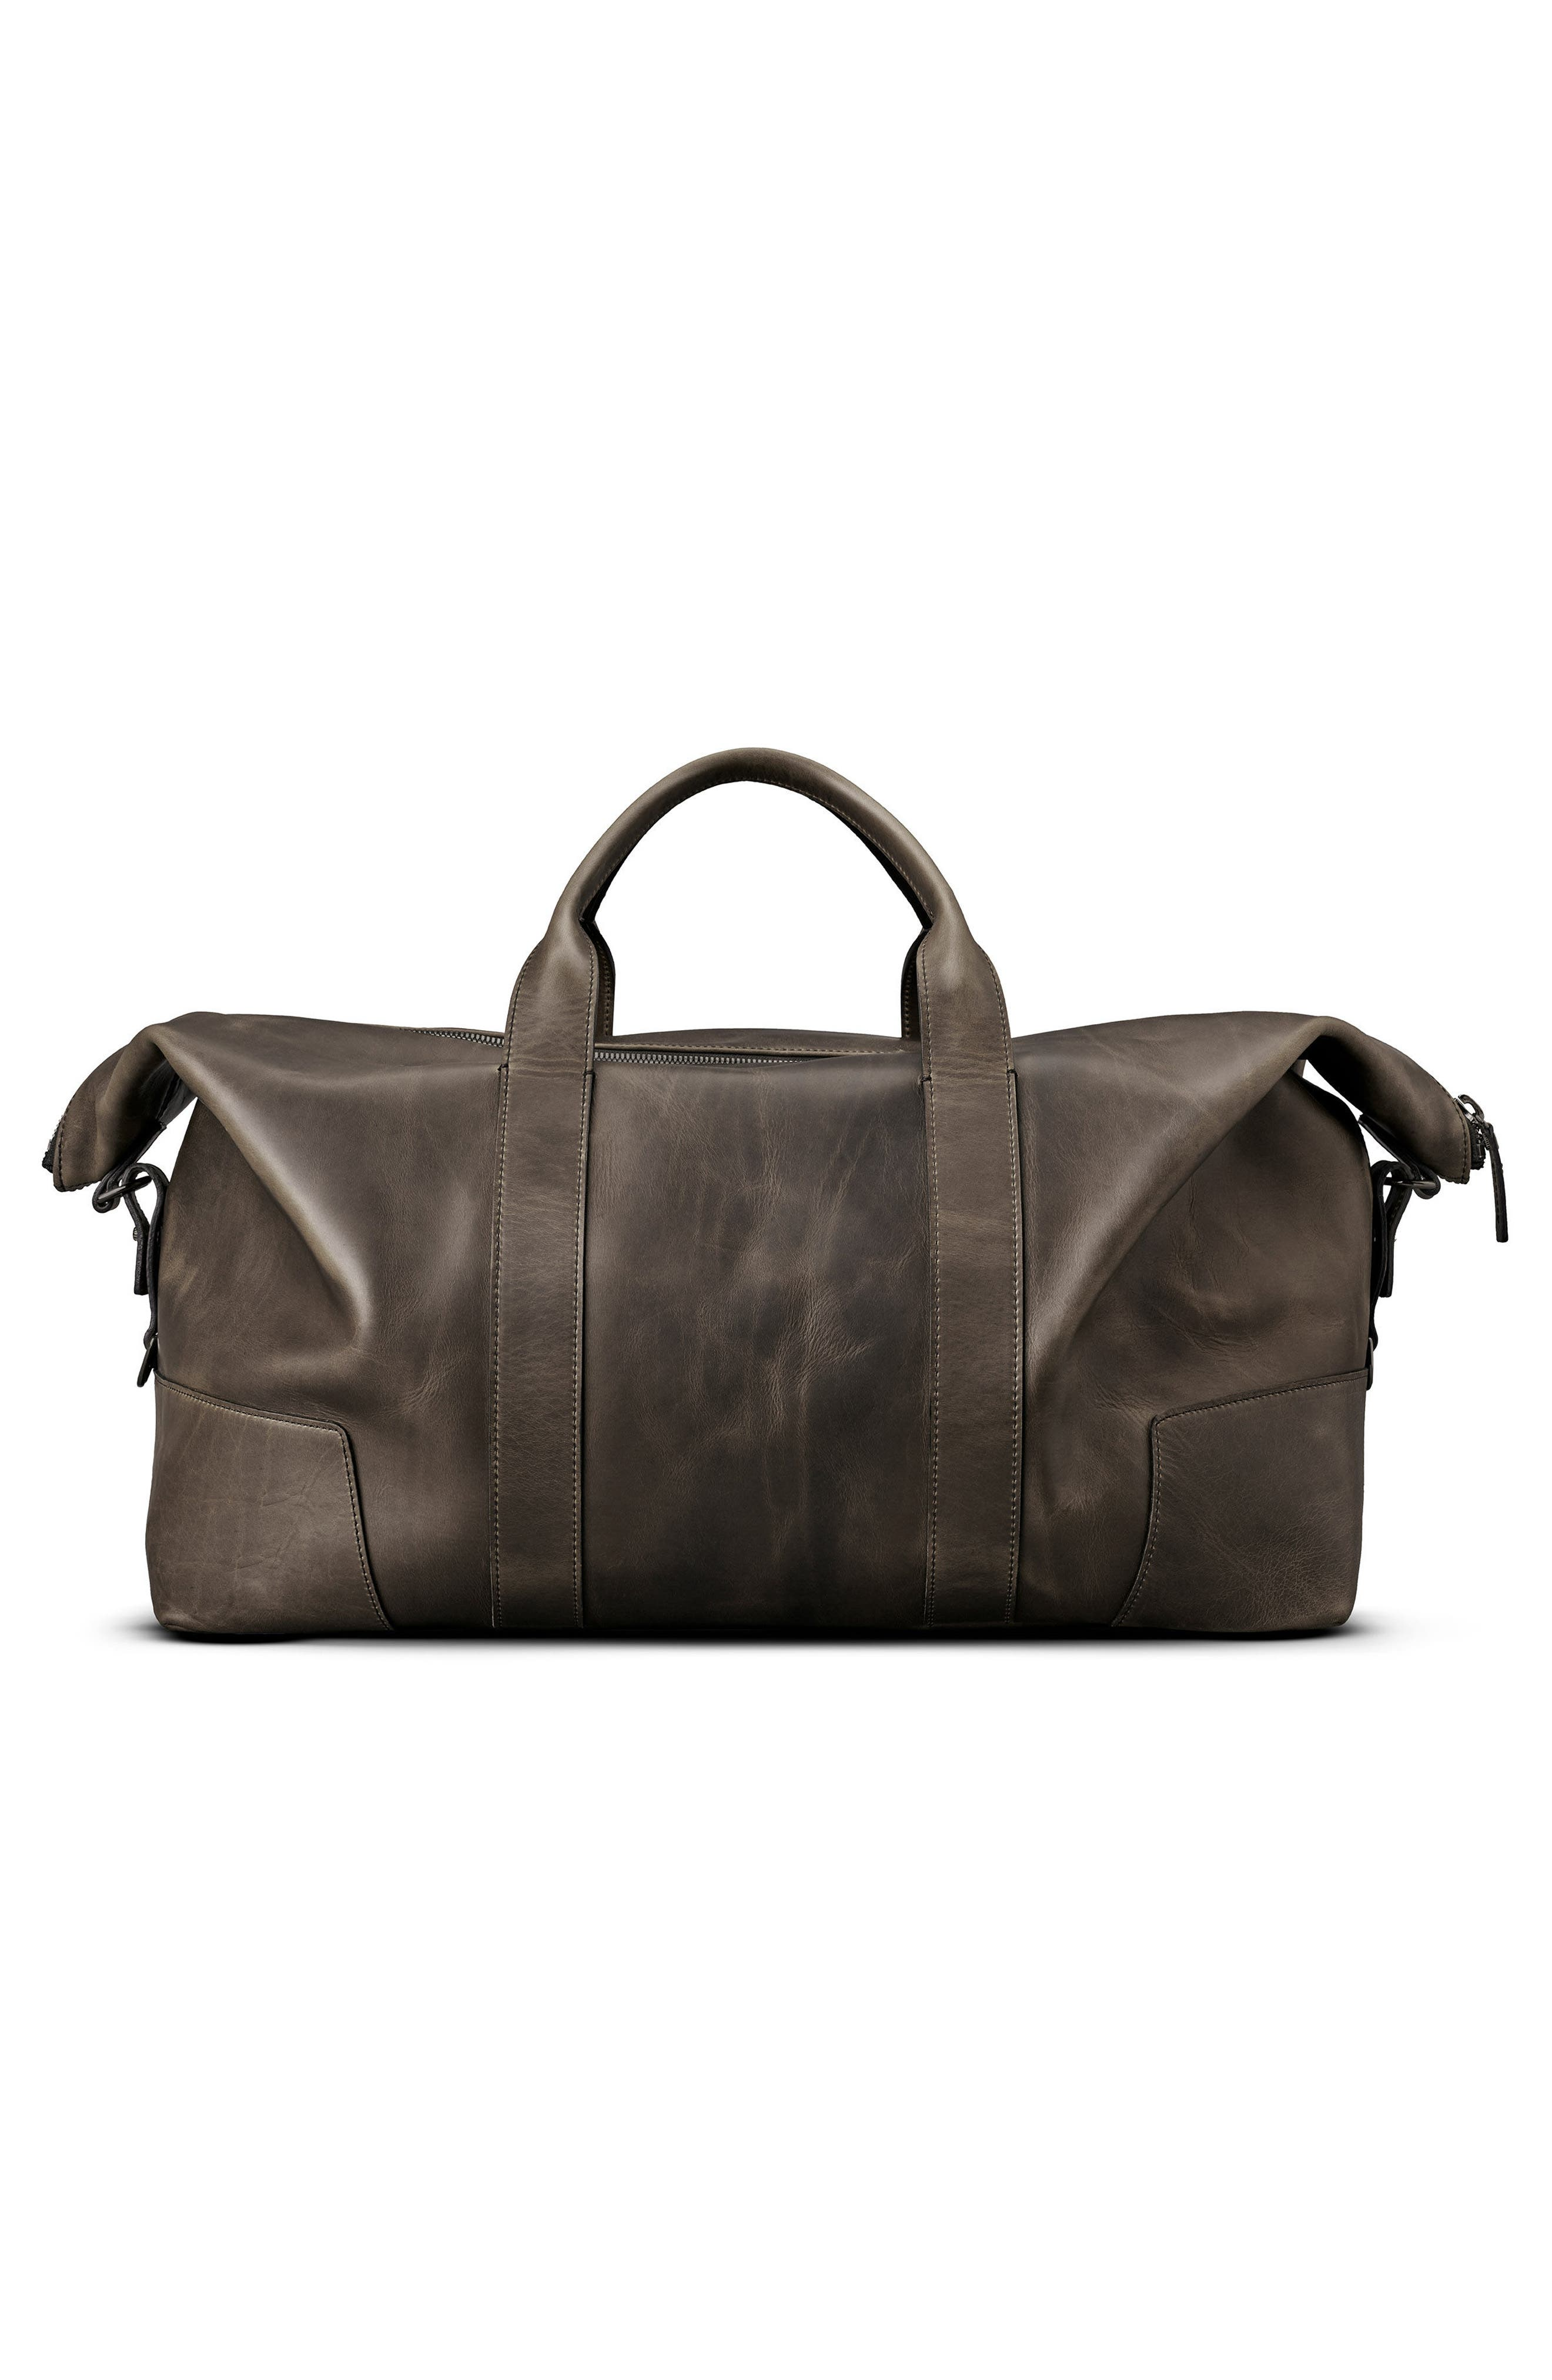 Madone Leather Carryall Bag,                             Alternate thumbnail 2, color,                             018